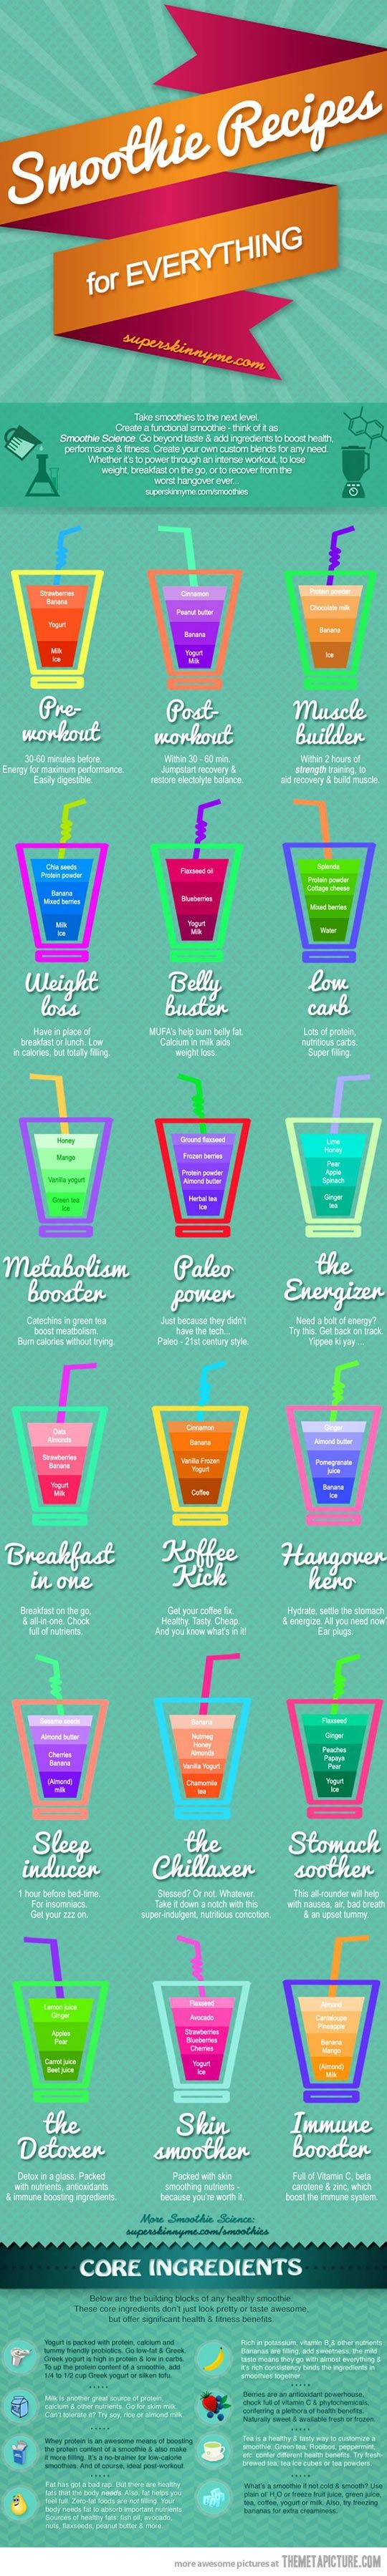 smoothies for every occasion